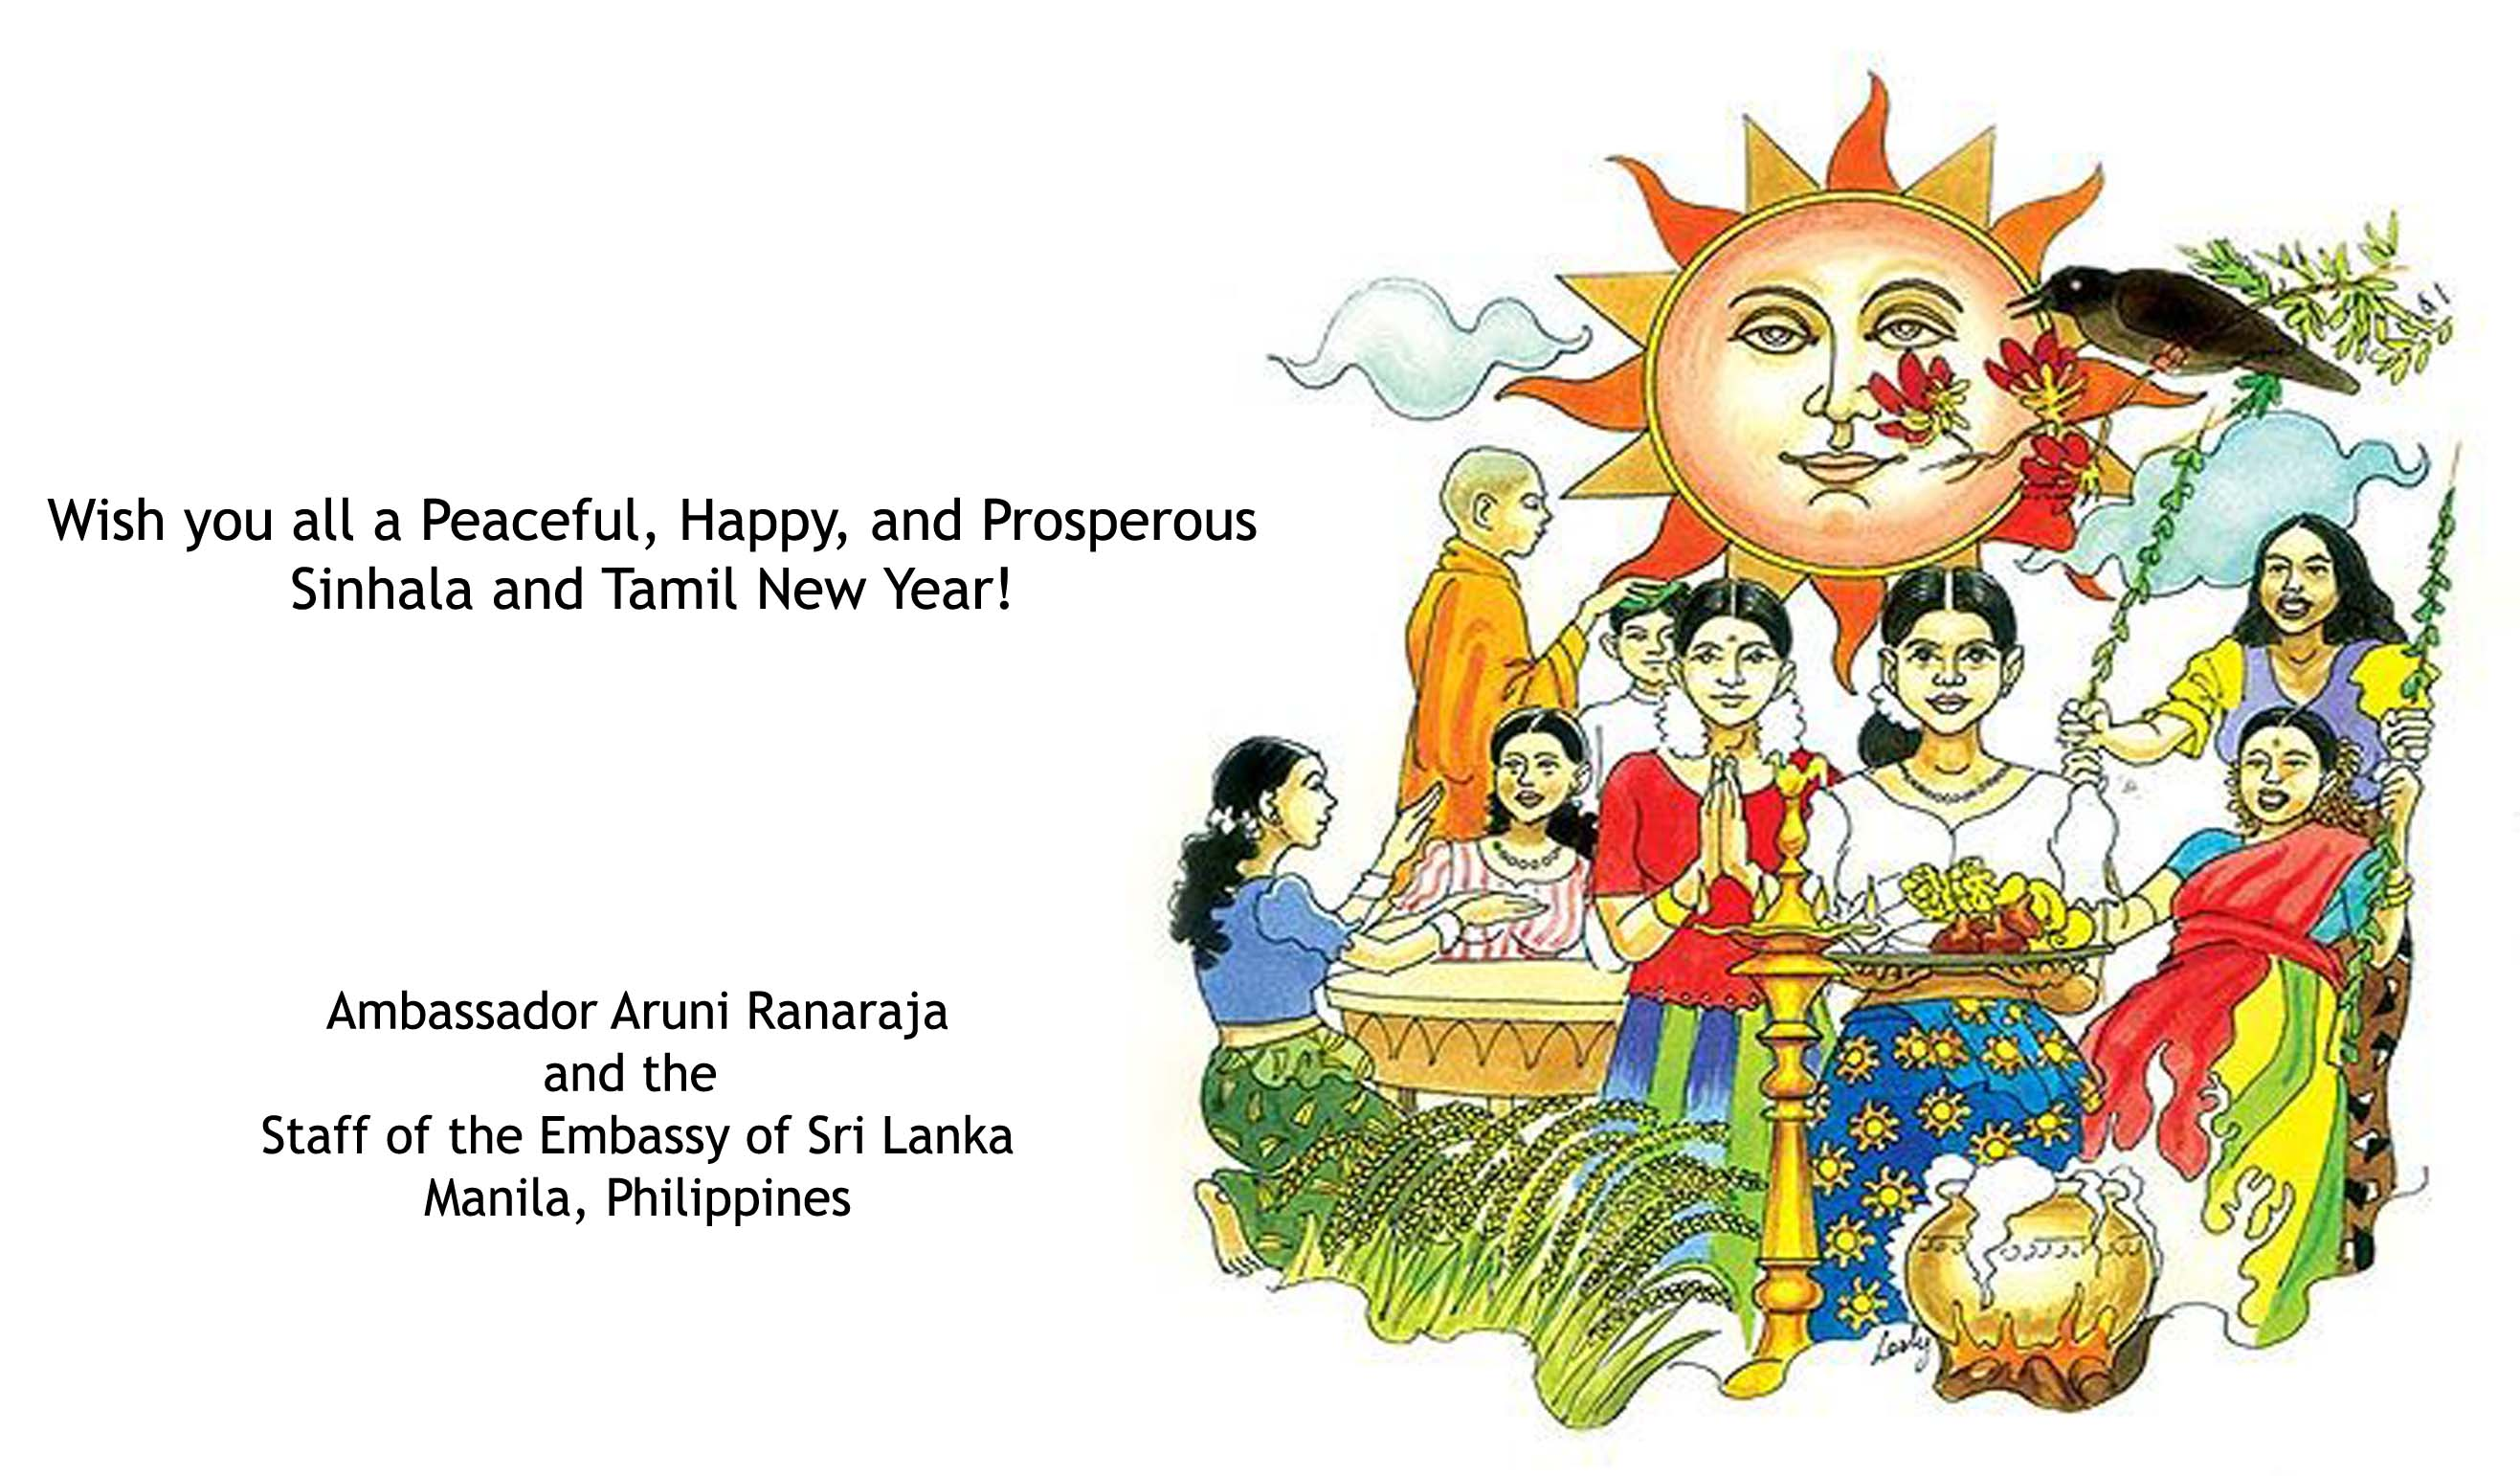 Sinhala and Tamil New Year Card